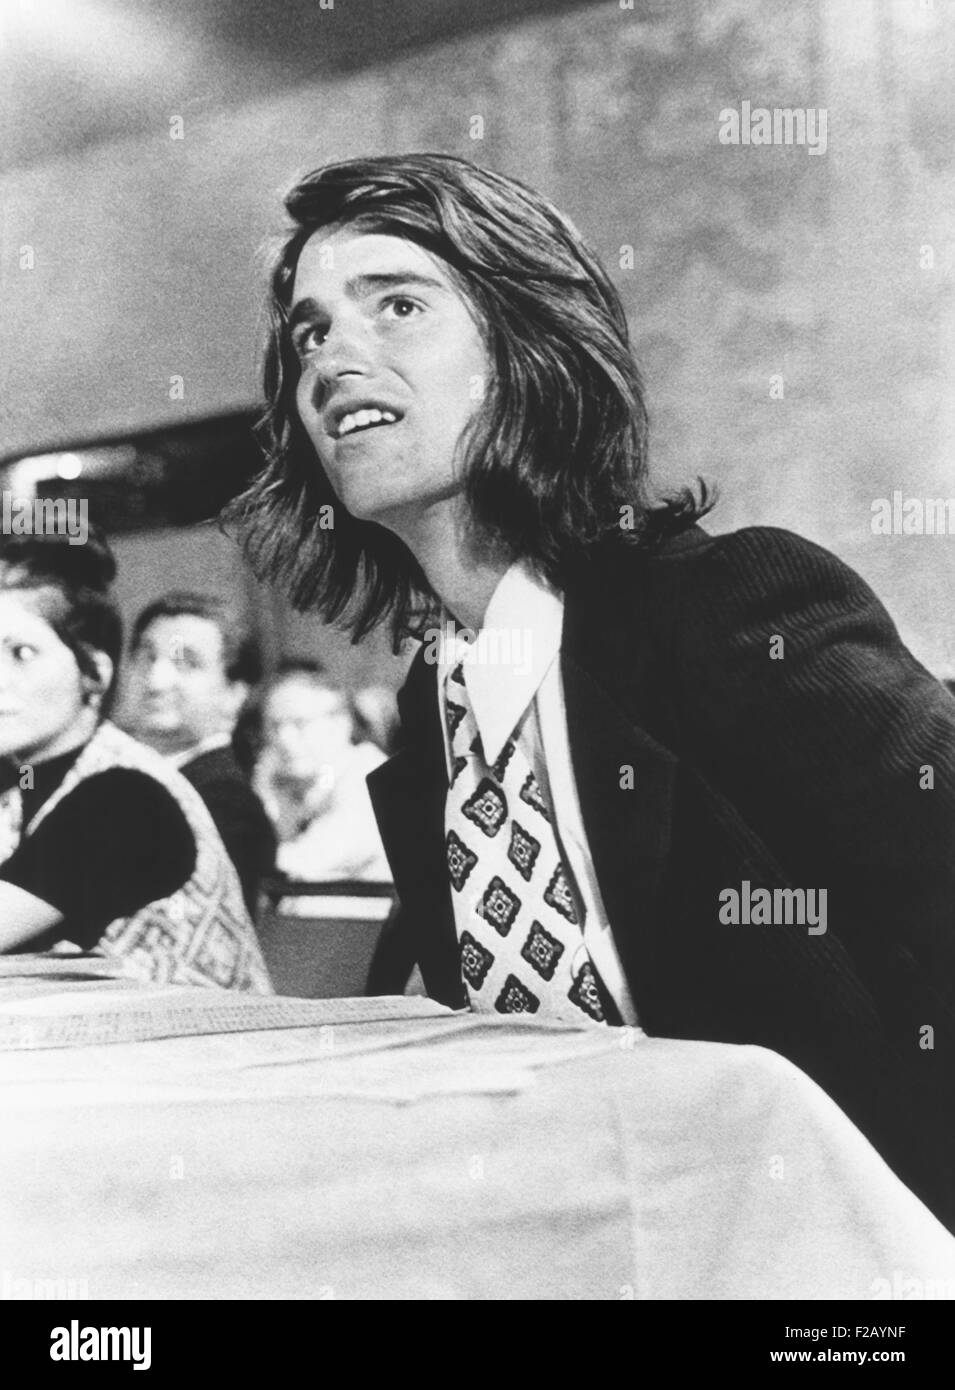 Bobby Shriver watches the Democratic National Committee approve his father' nomination for VP. After Thomas - Stock Image